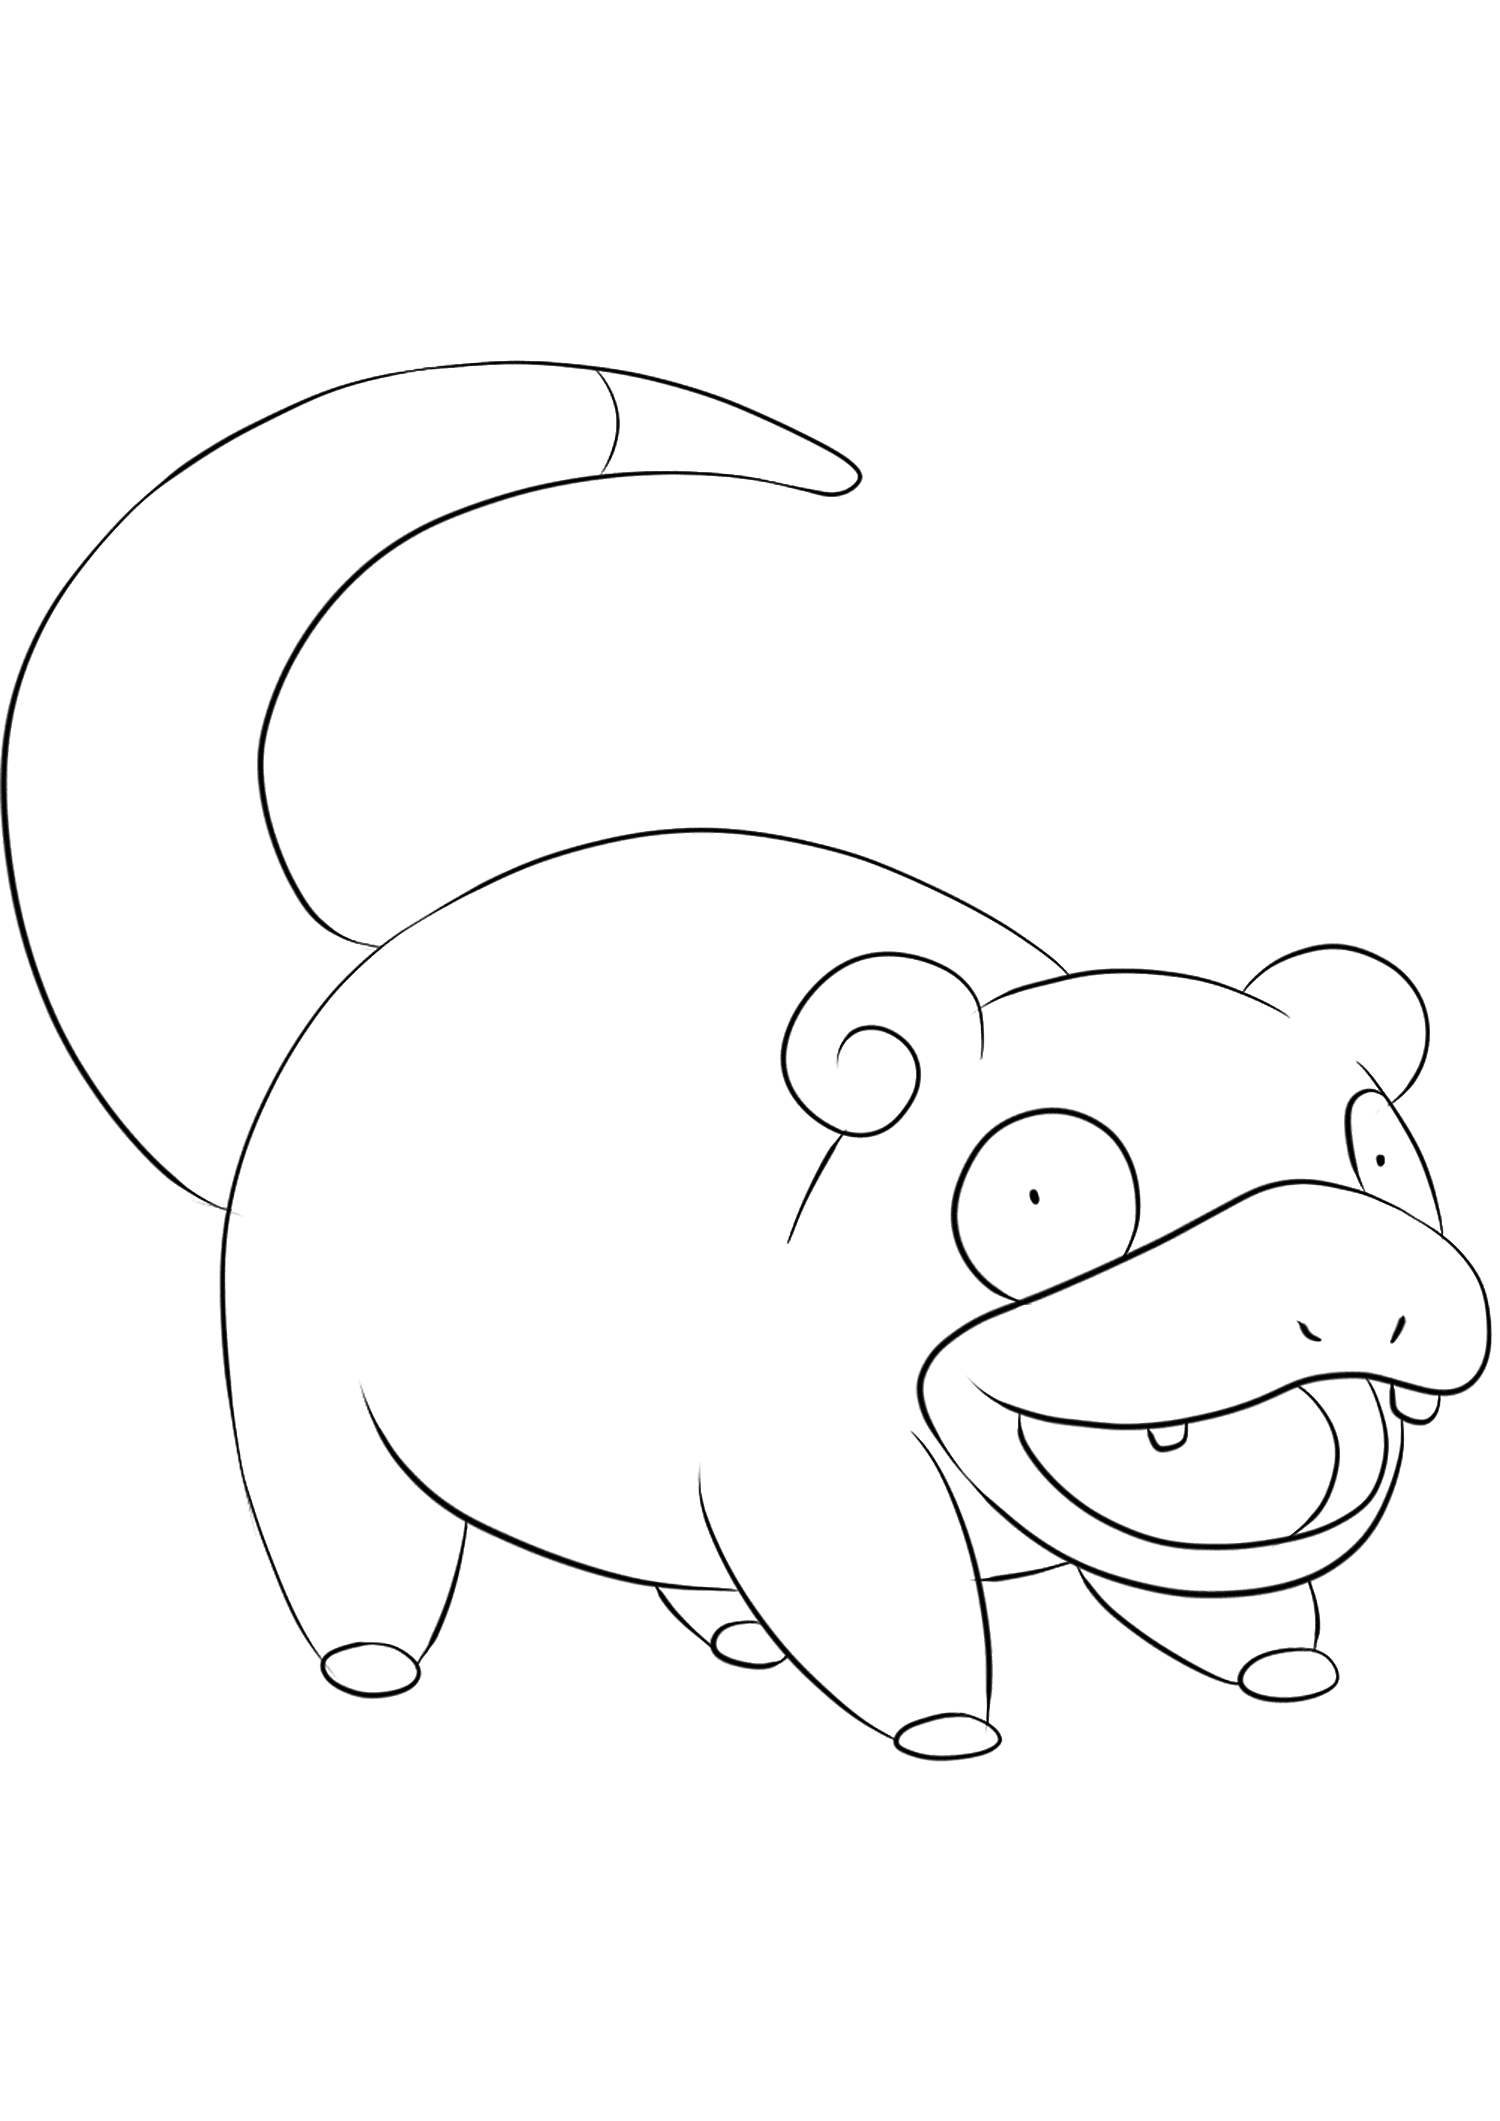 Slowpoke (No.79)Slowpoke Coloring page, Generation I Pokemon of type Water and PsychicOriginal image credit: Pokemon linearts by Lilly Gerbil on Deviantart.Permission:  All rights reserved © Pokemon company and Ken Sugimori.